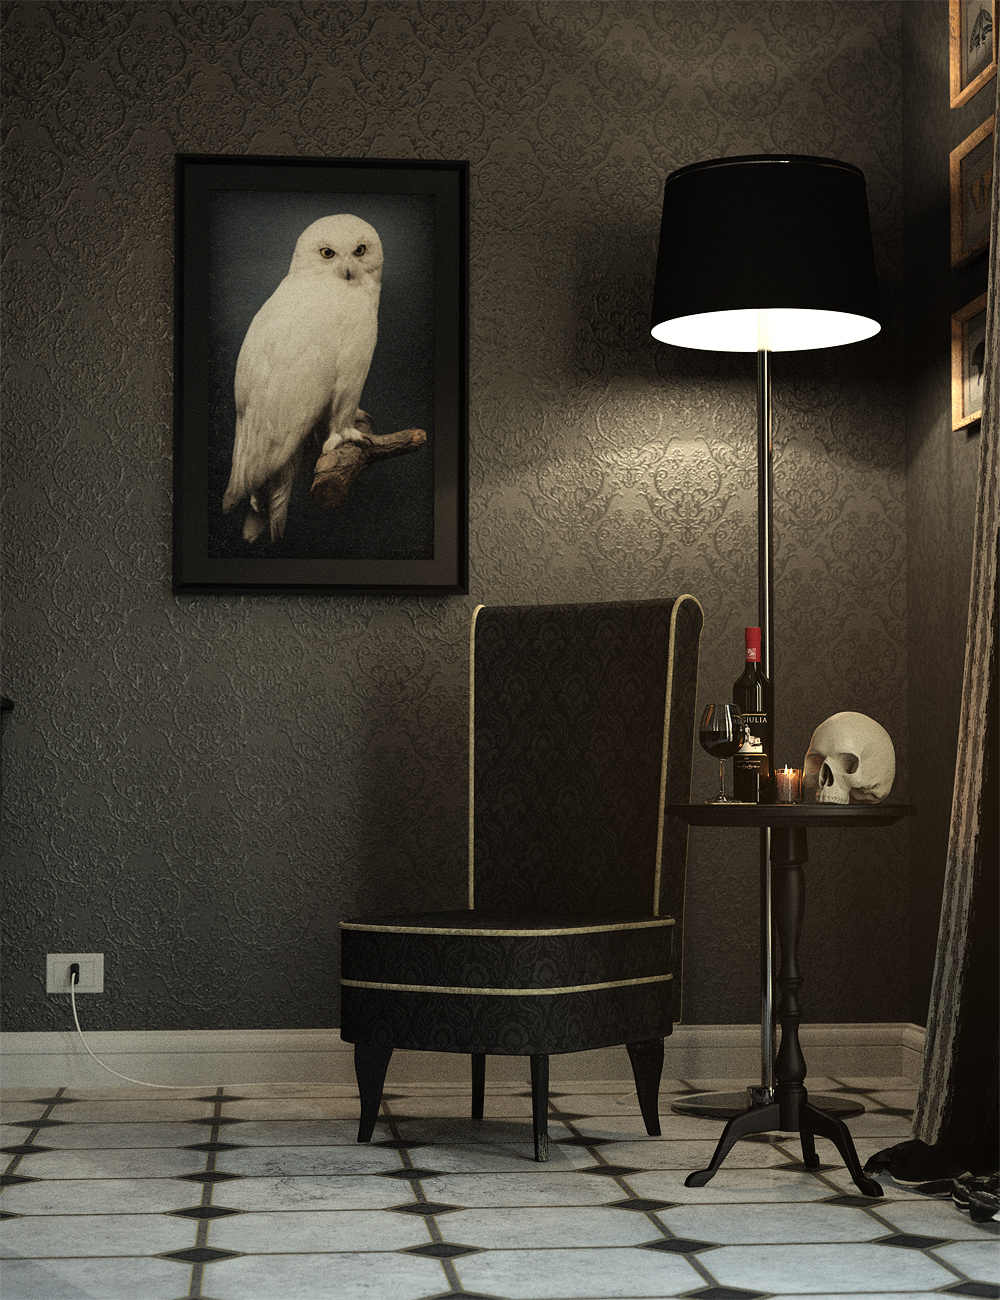 Lights And Cameras For The Venezia Suite by: Stonemason, 3D Models by Daz 3D